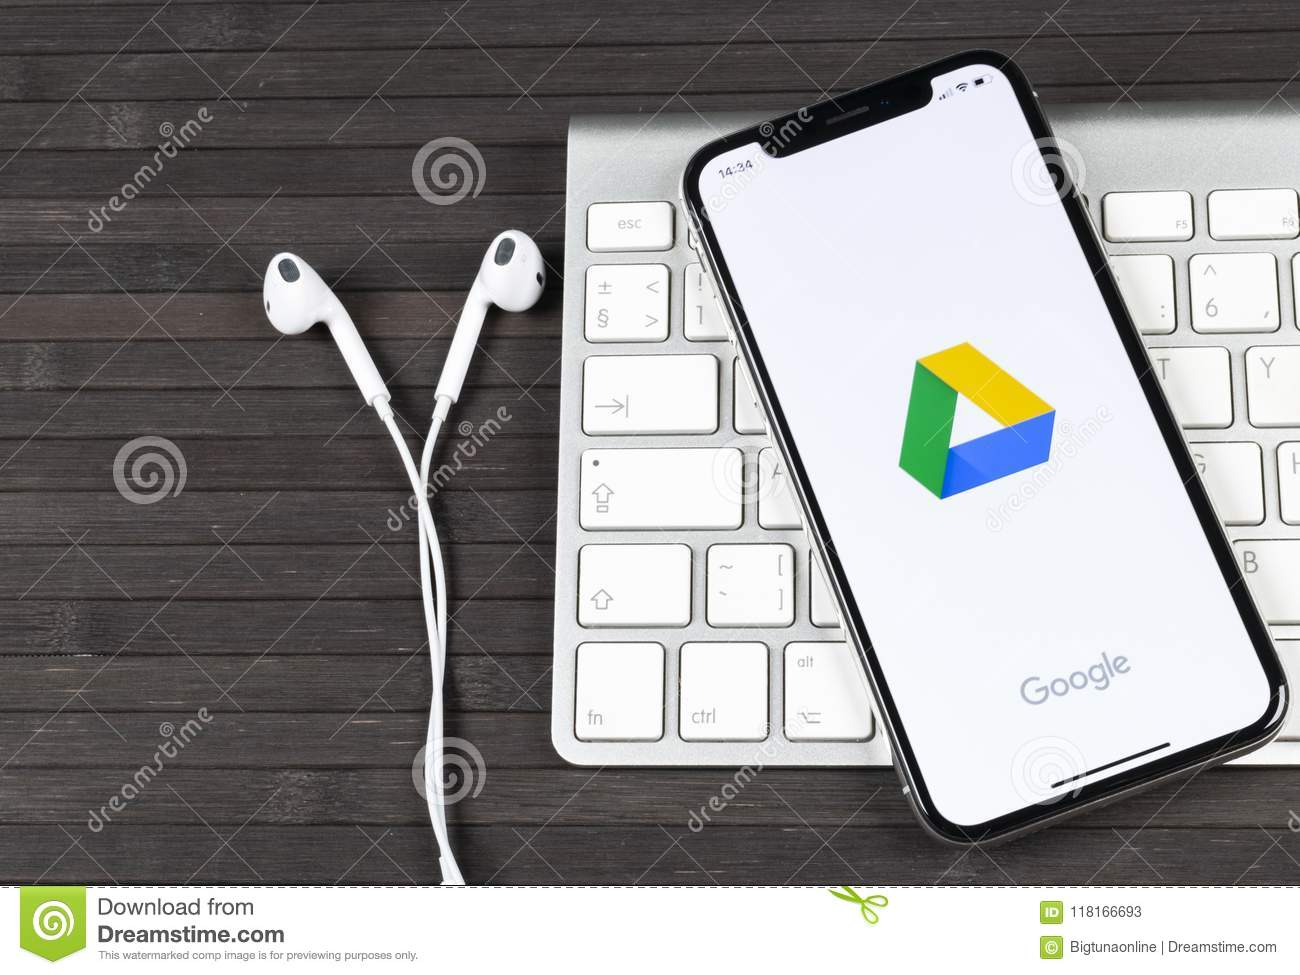 how to download from google drive to iphone